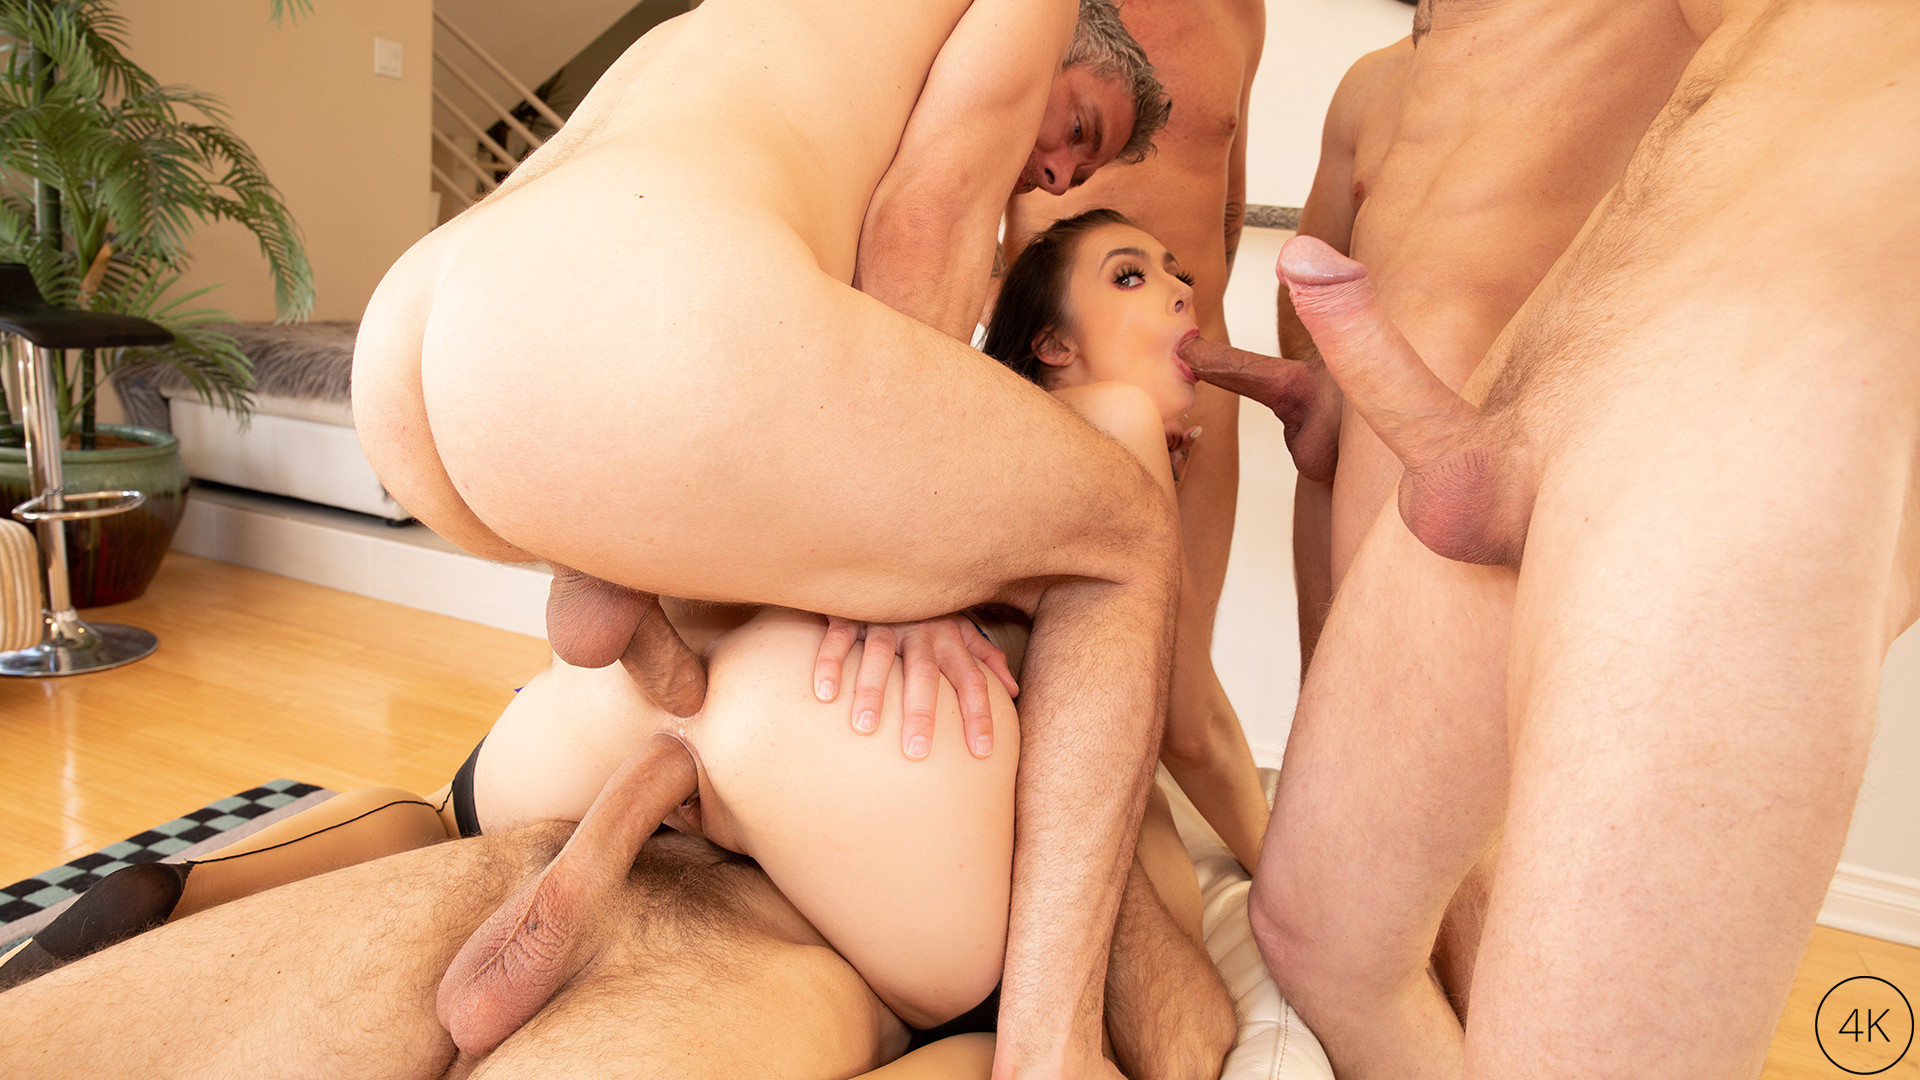 The Gangbang Of Marley Brinx Por